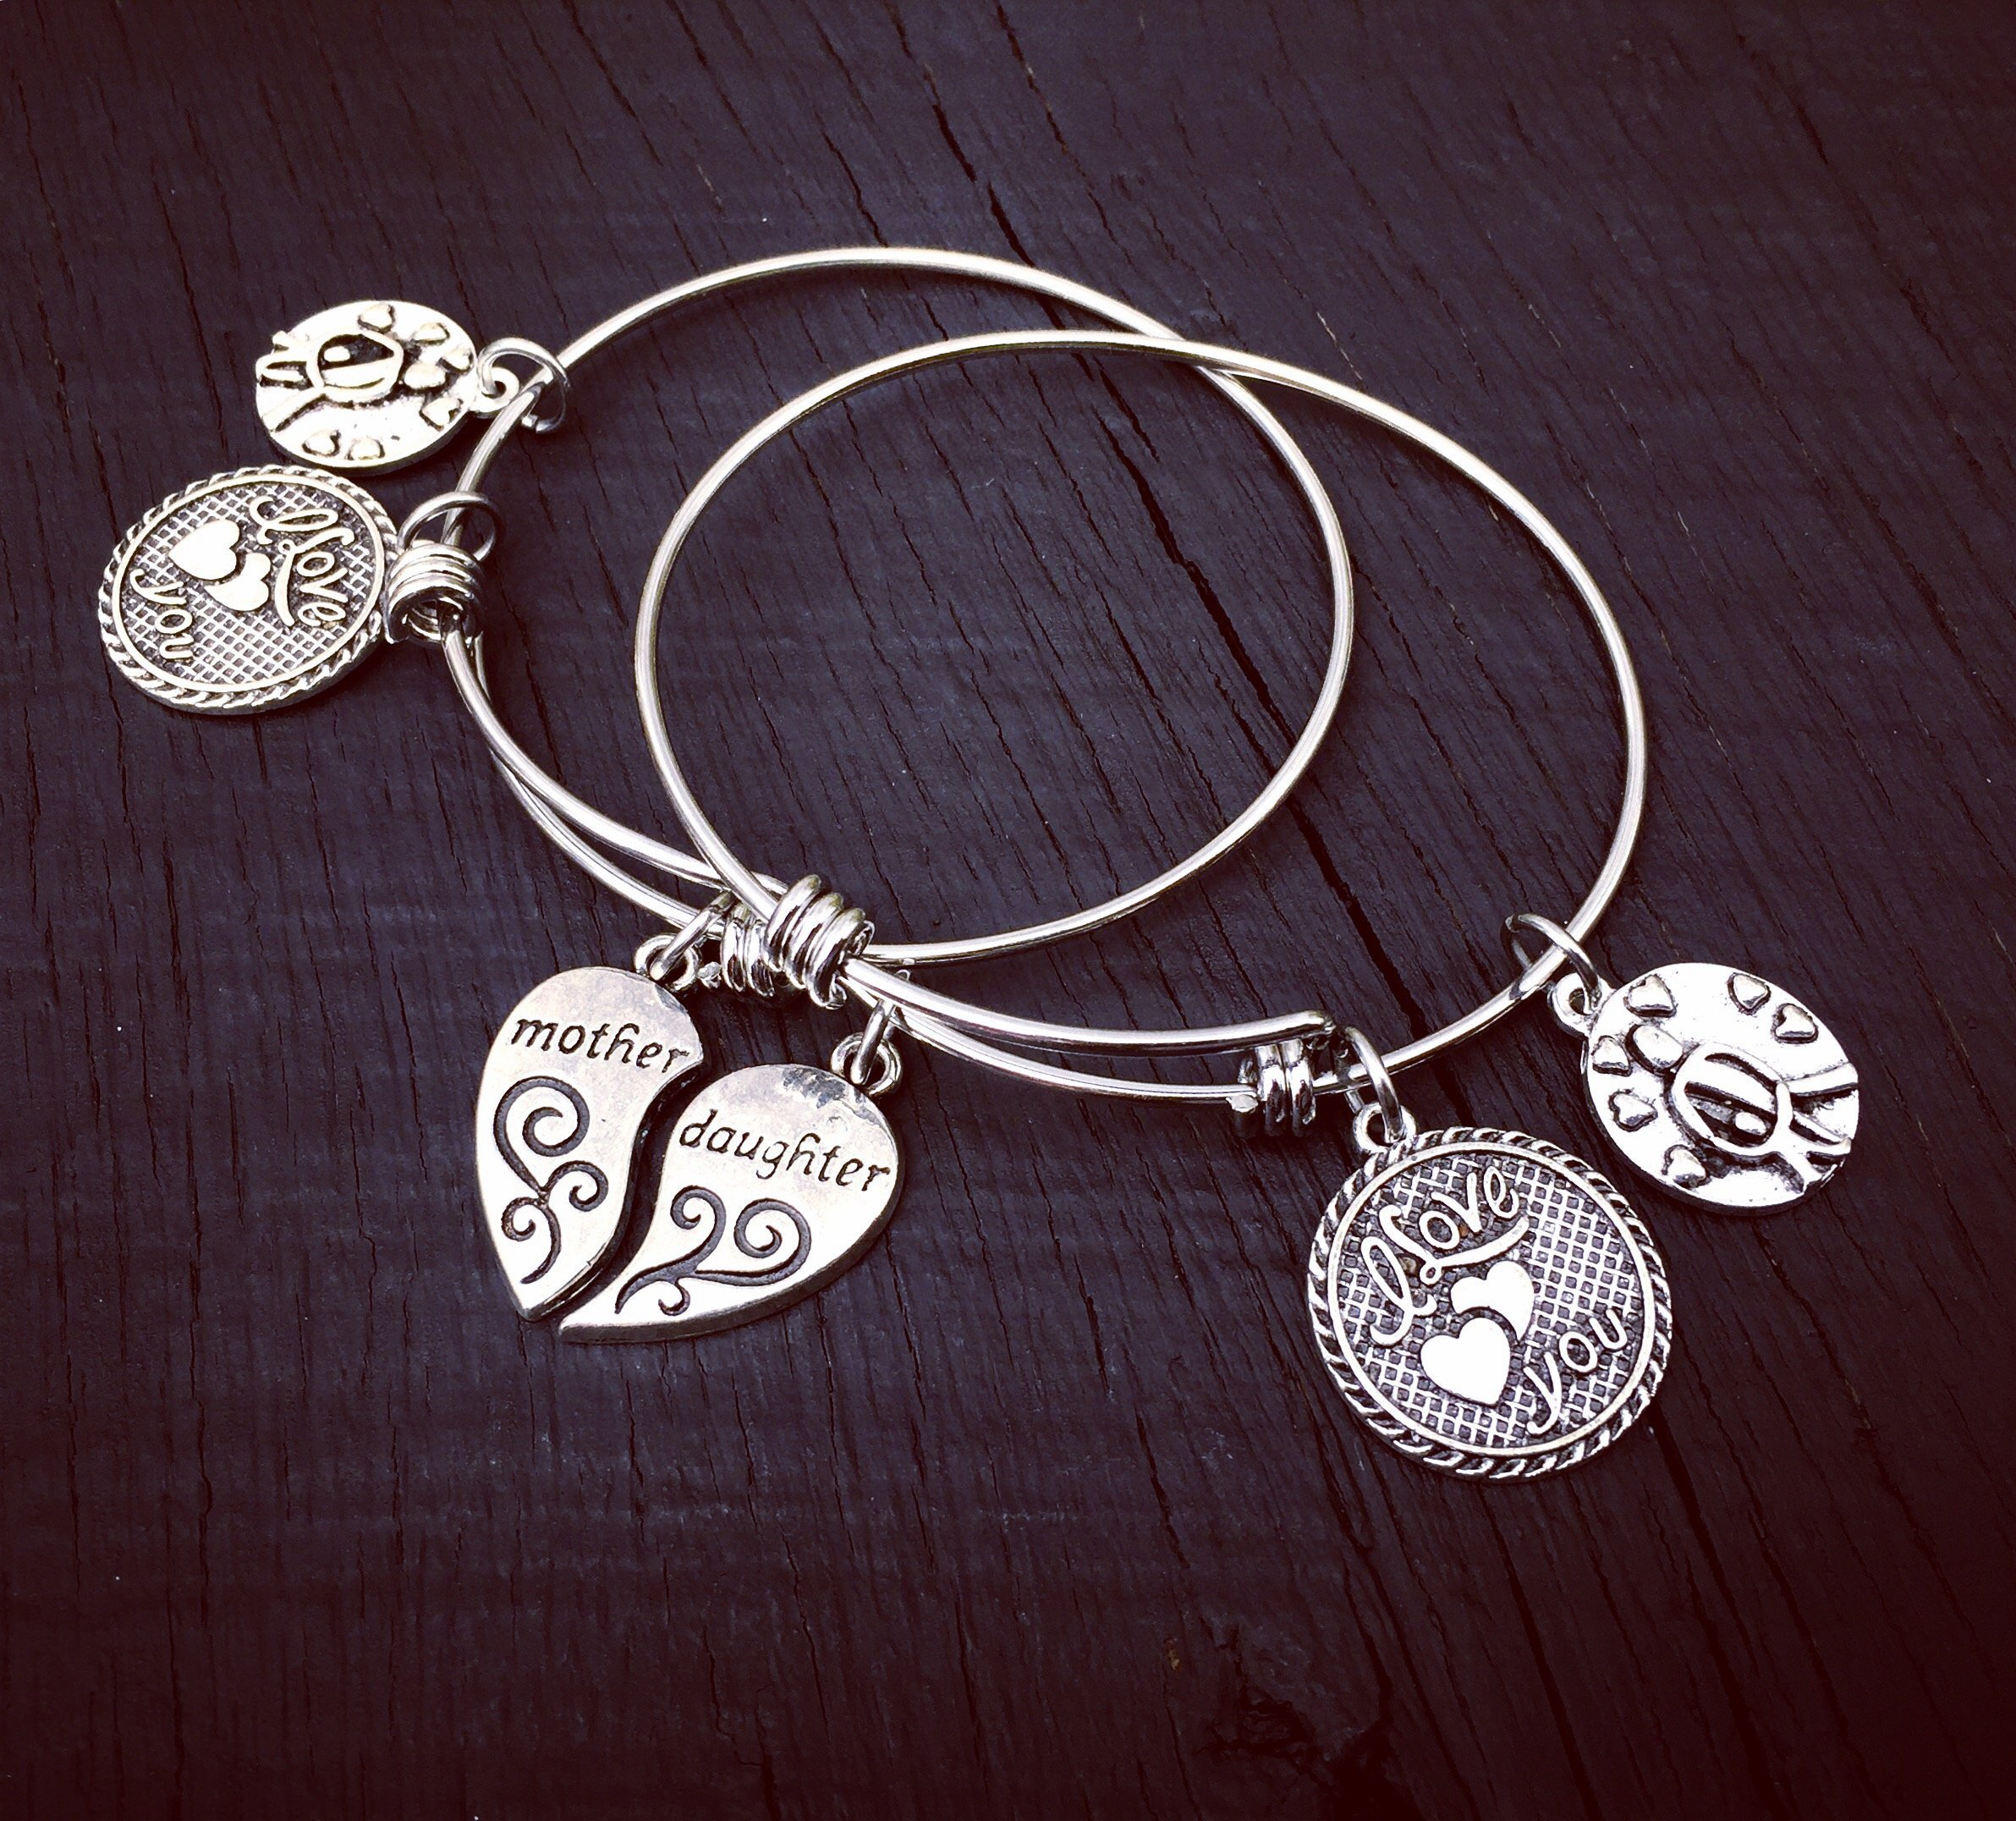 bangle bracelet nana jewelry gift theres handstamped these day my stole pin who heart personalize kids mothers mother